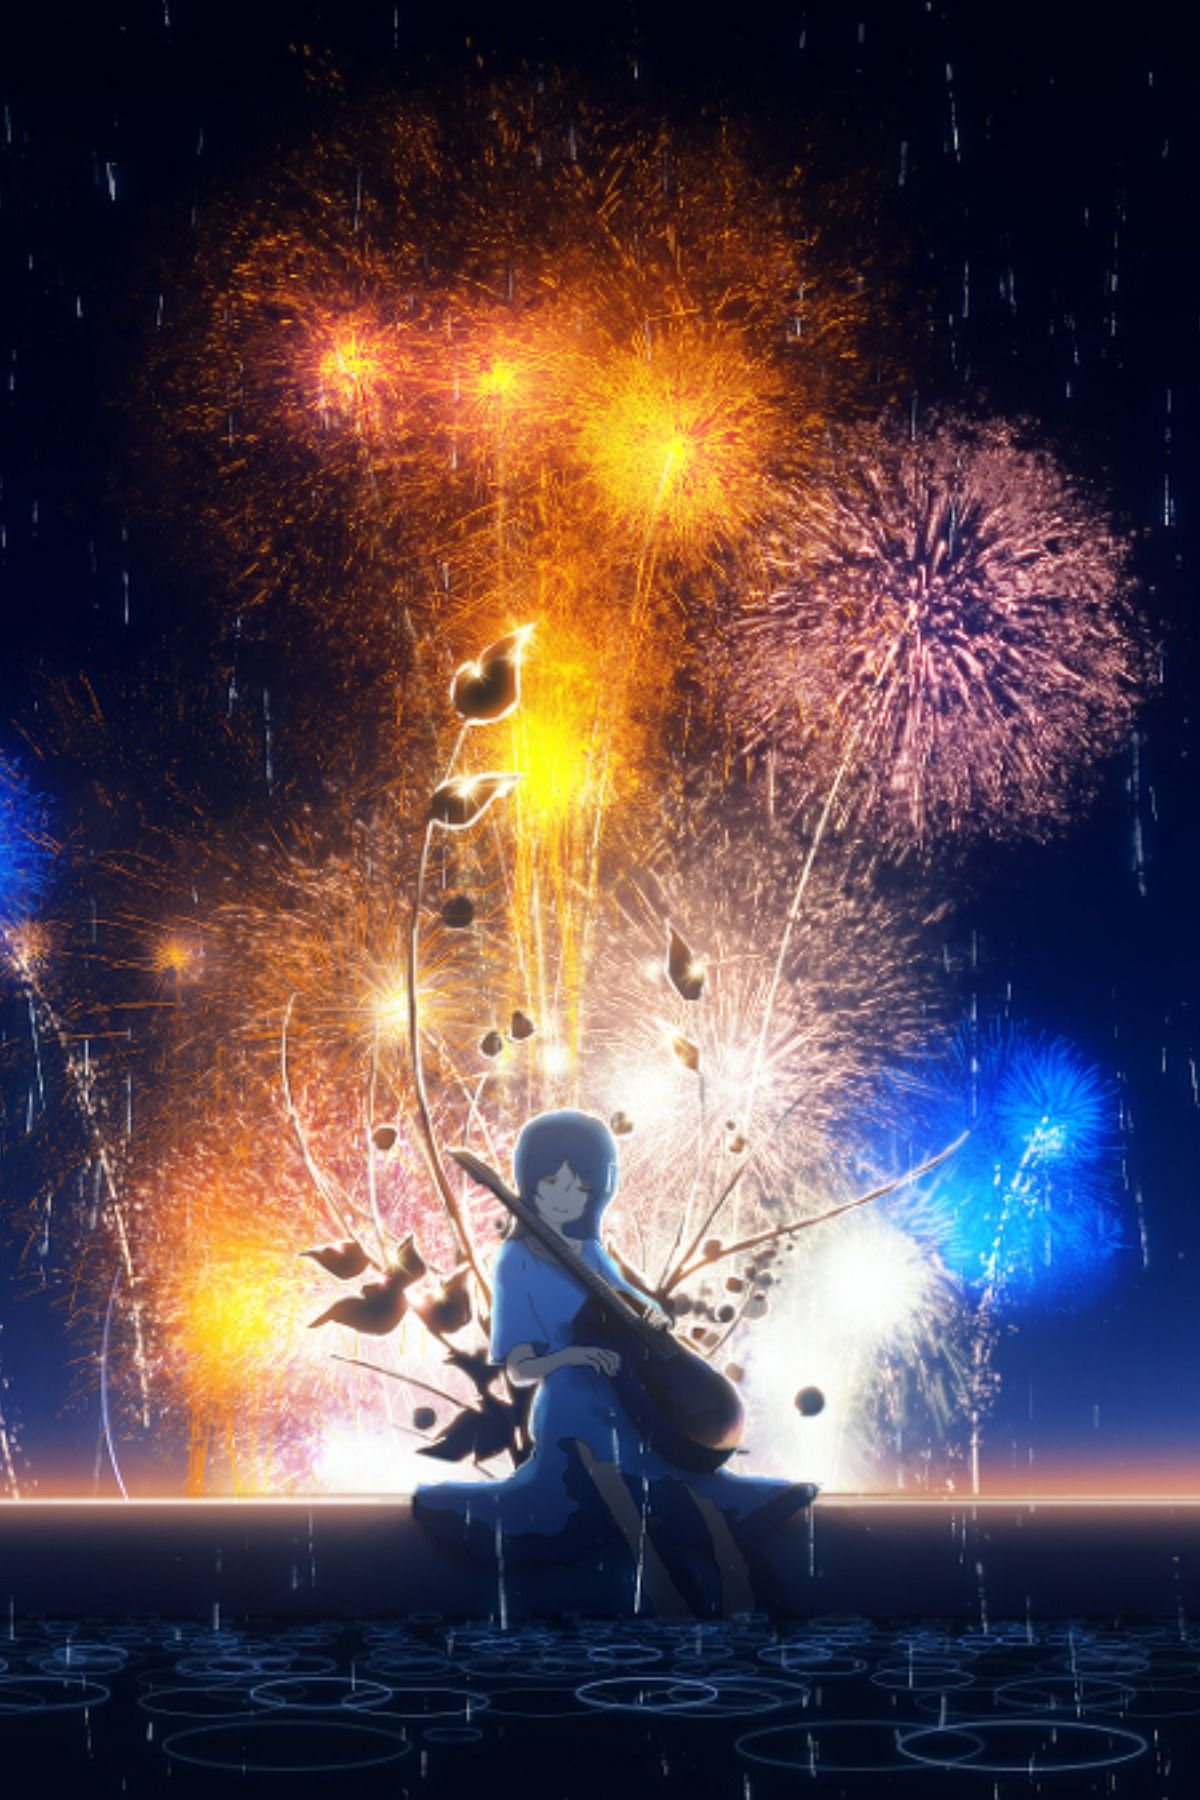 Save Follow The Invader Fireworks anime hd wallpaper